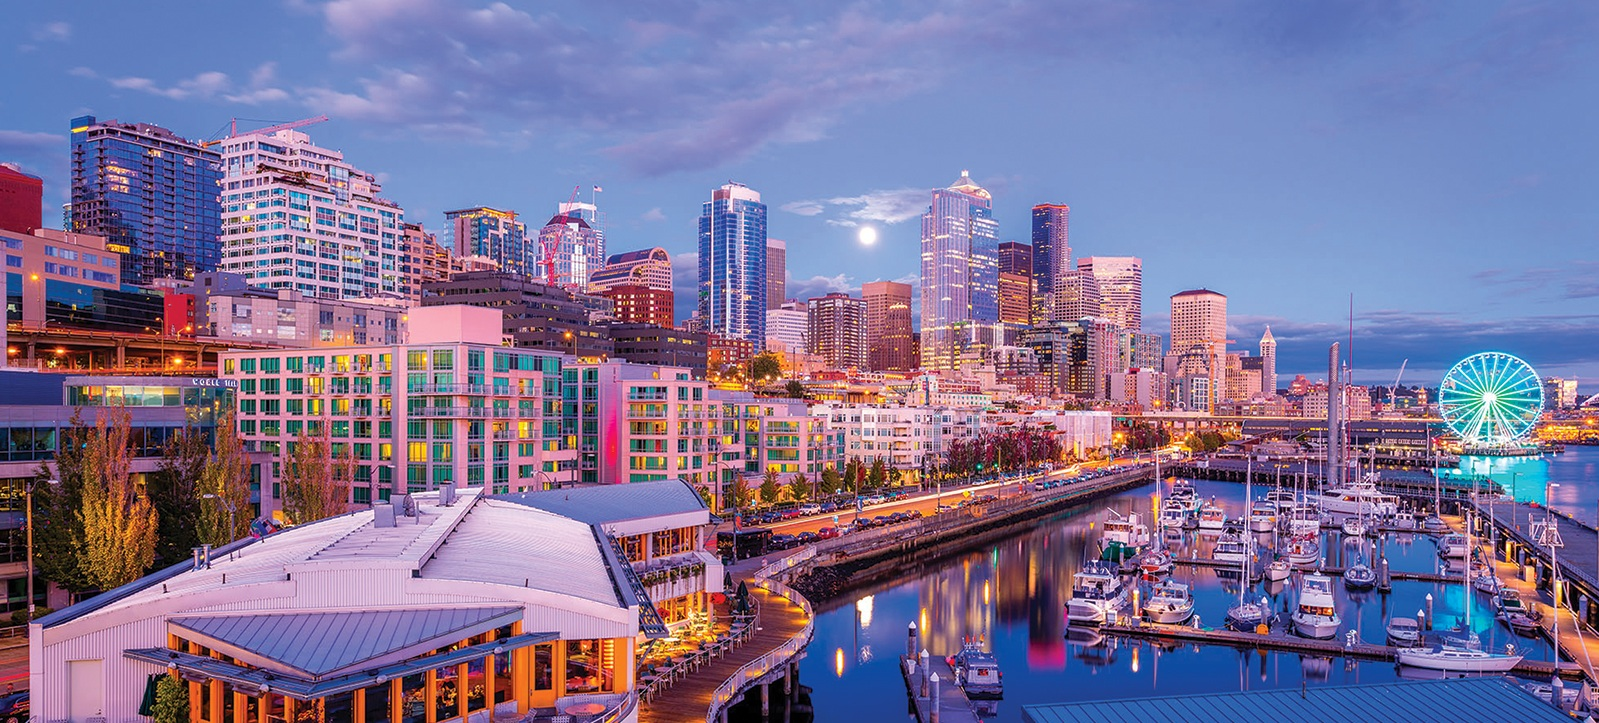 2018 SEATTLE FIDUCIARY SUMMIT - PART OF THE RETIREMENT PLAN ROAD SHOW